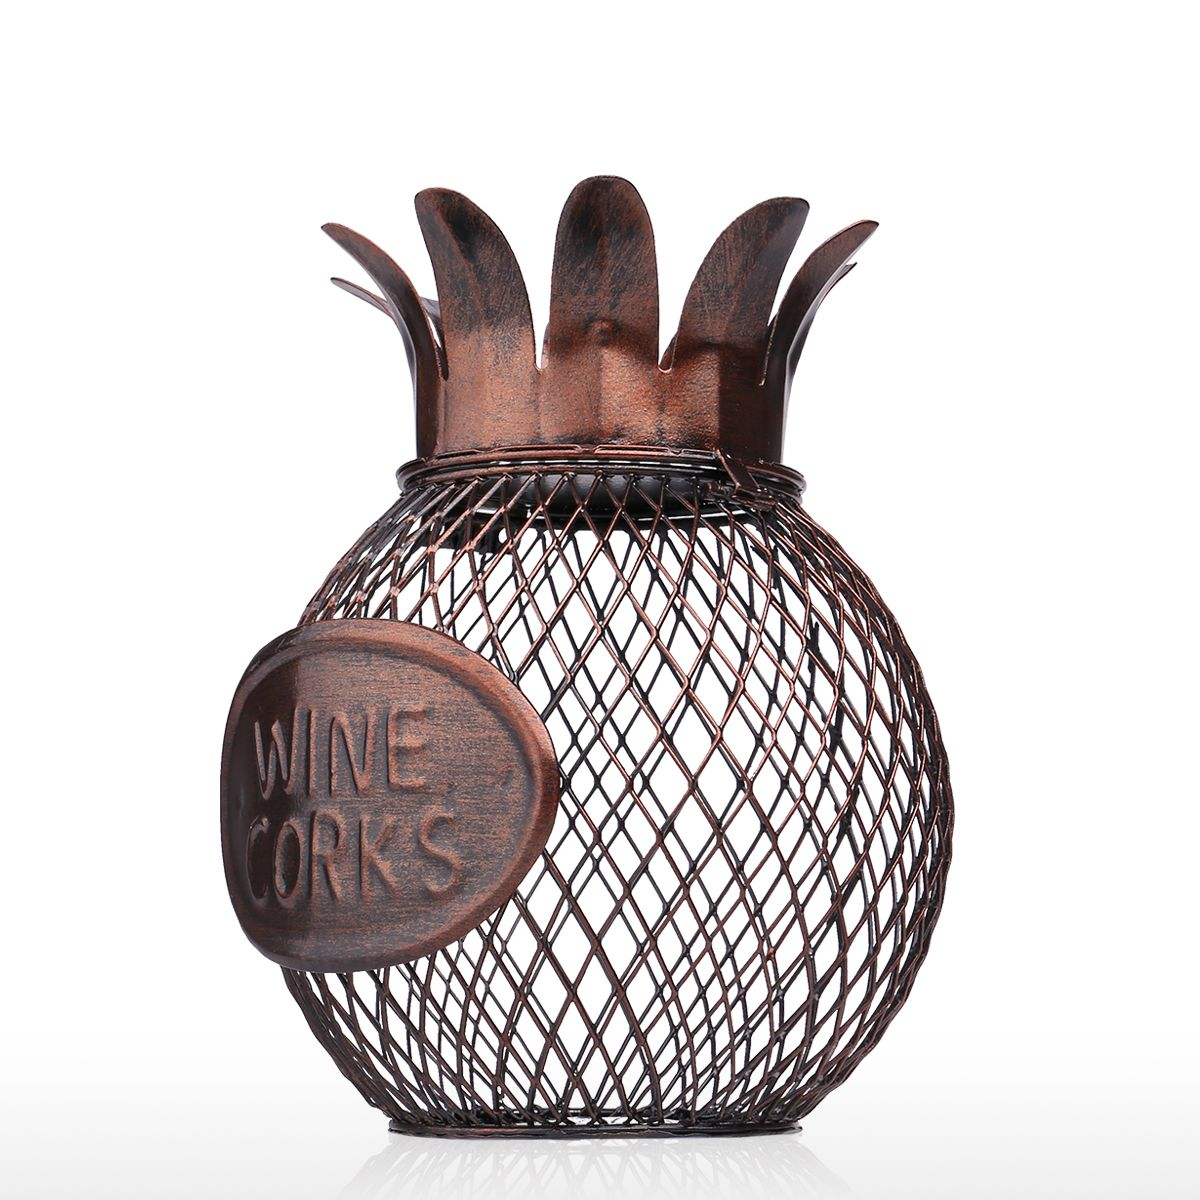 Tooarts Pineapple Wine Cork Container Practical Sculp Home Decor